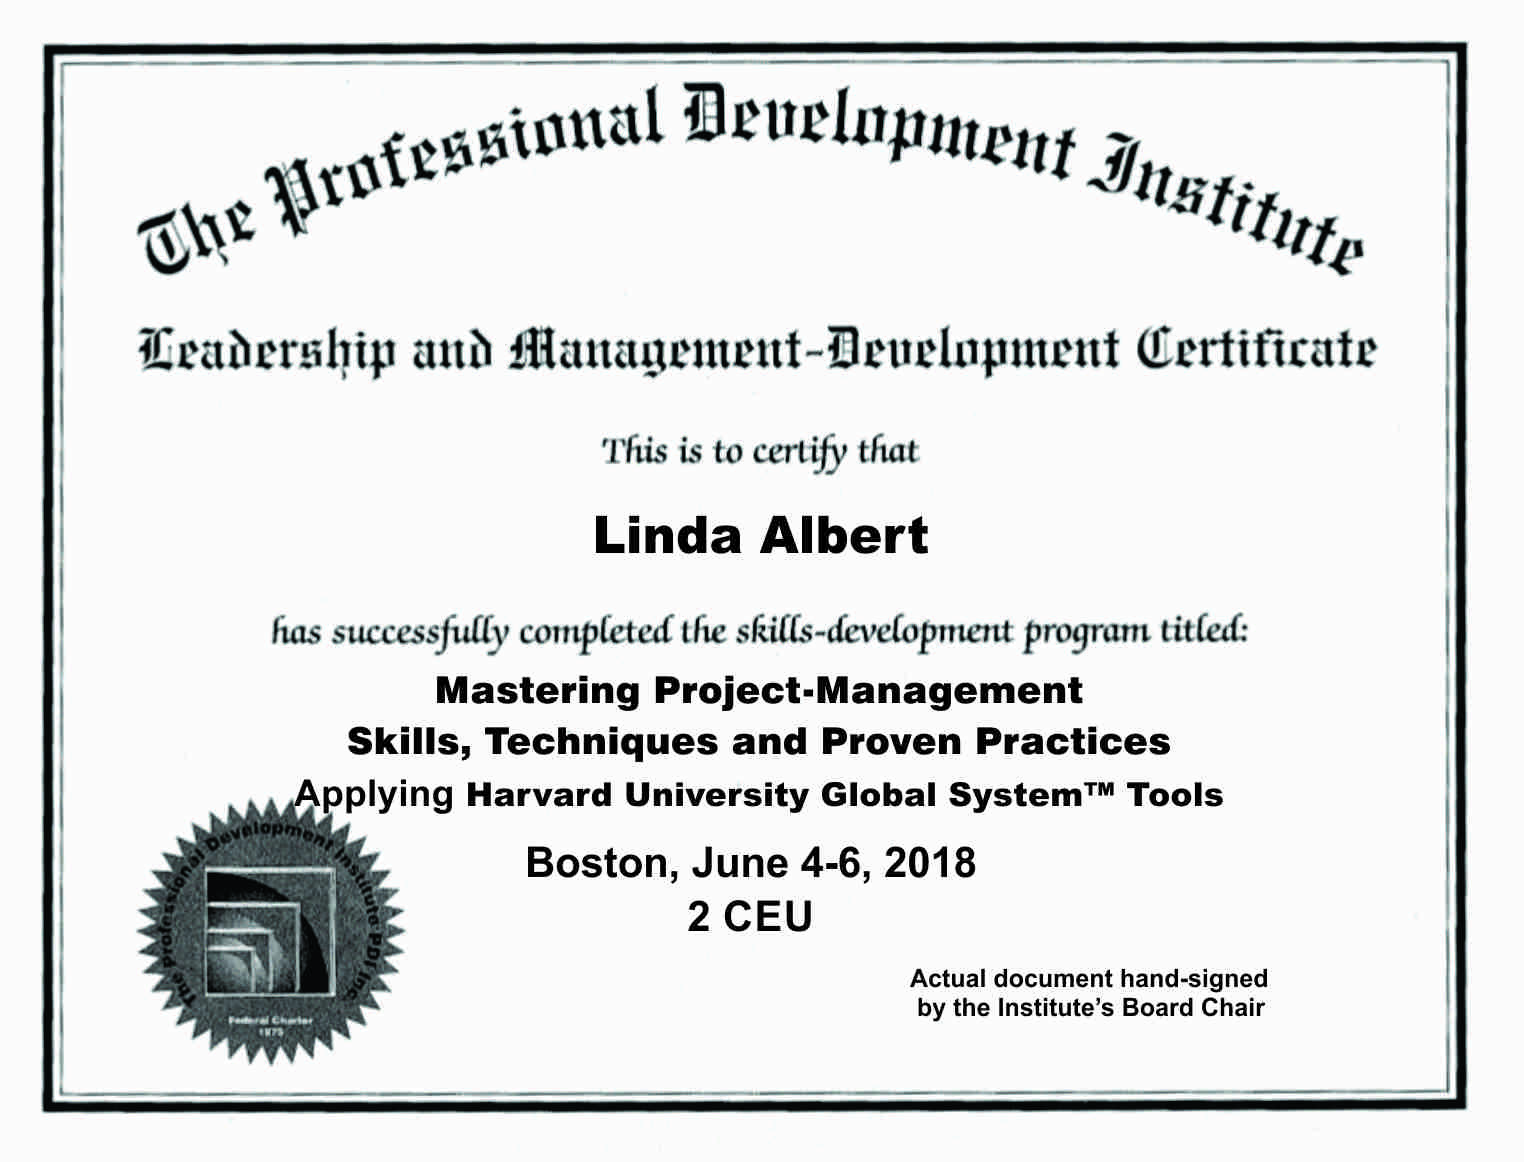 Project management skills techniques and practices harvard system project management certificate xflitez Choice Image